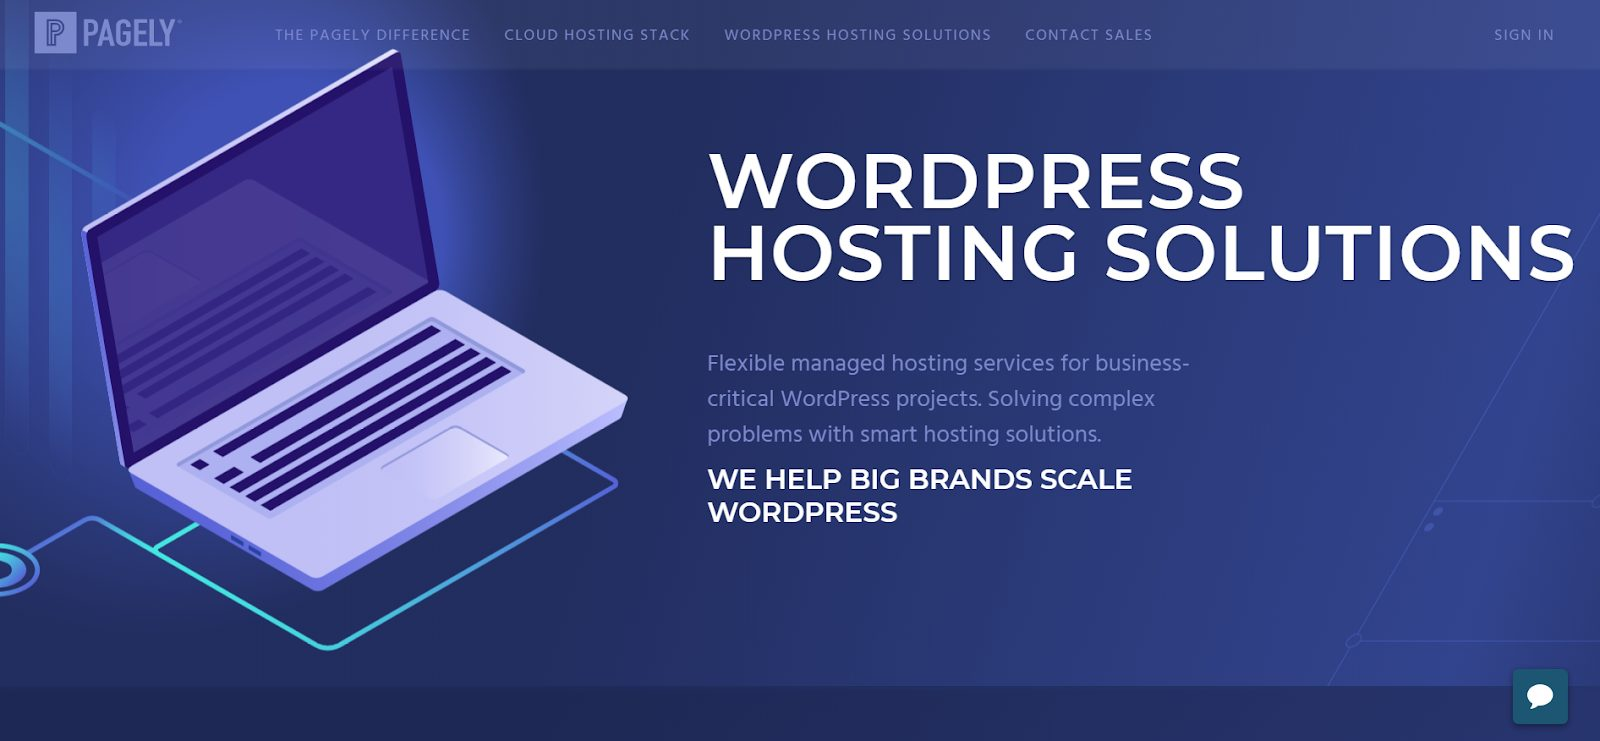 Pagely WordPress hosting solutions page